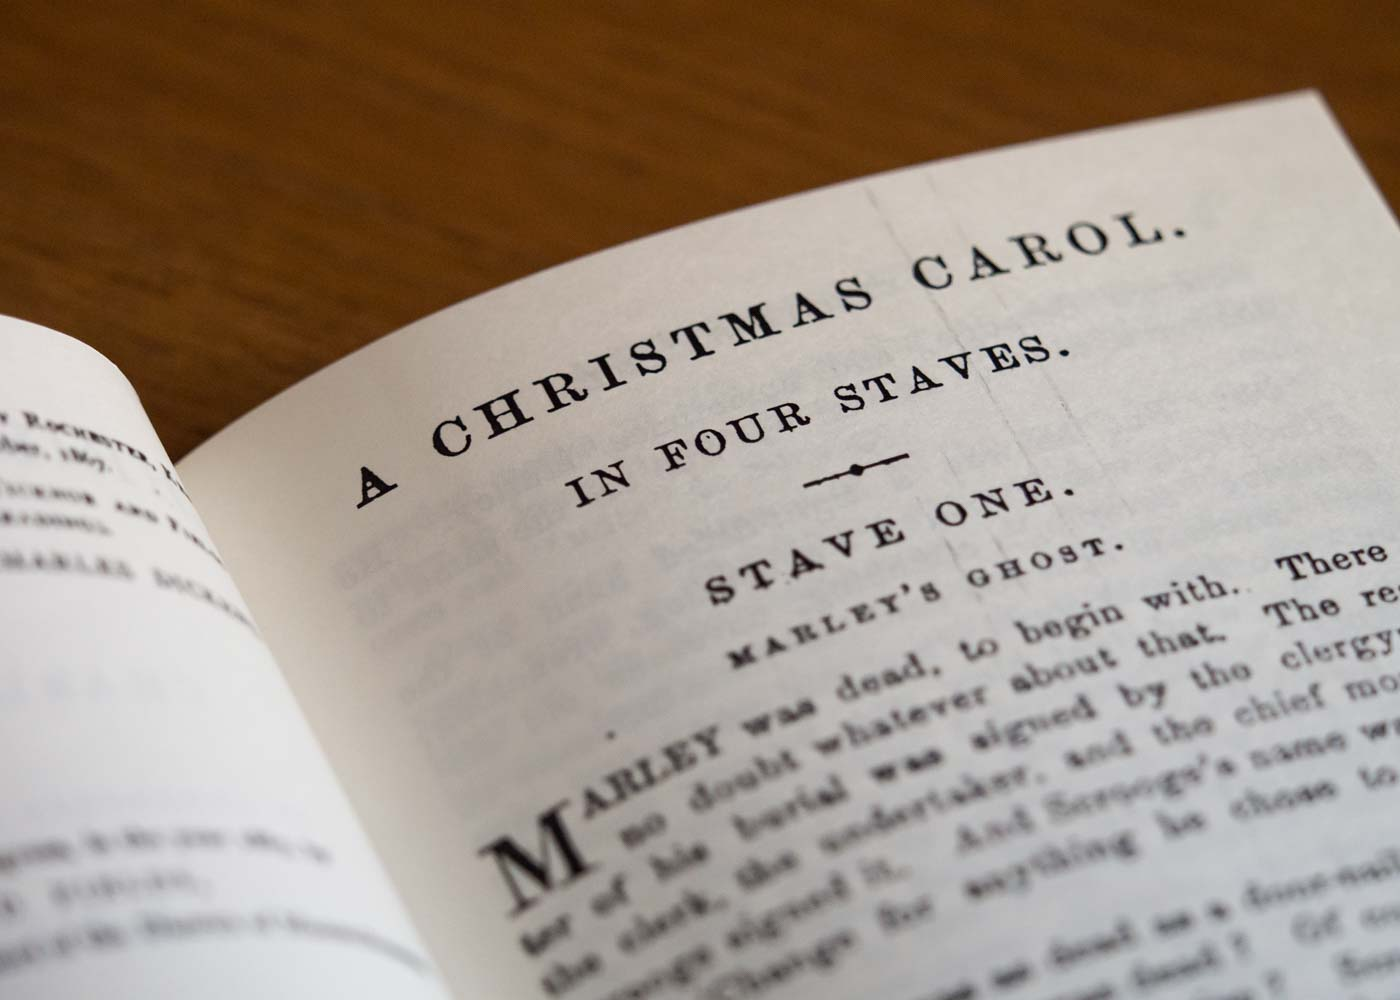 Reprints of Dickens' condensed version of his classic Christmas tale are available from India.